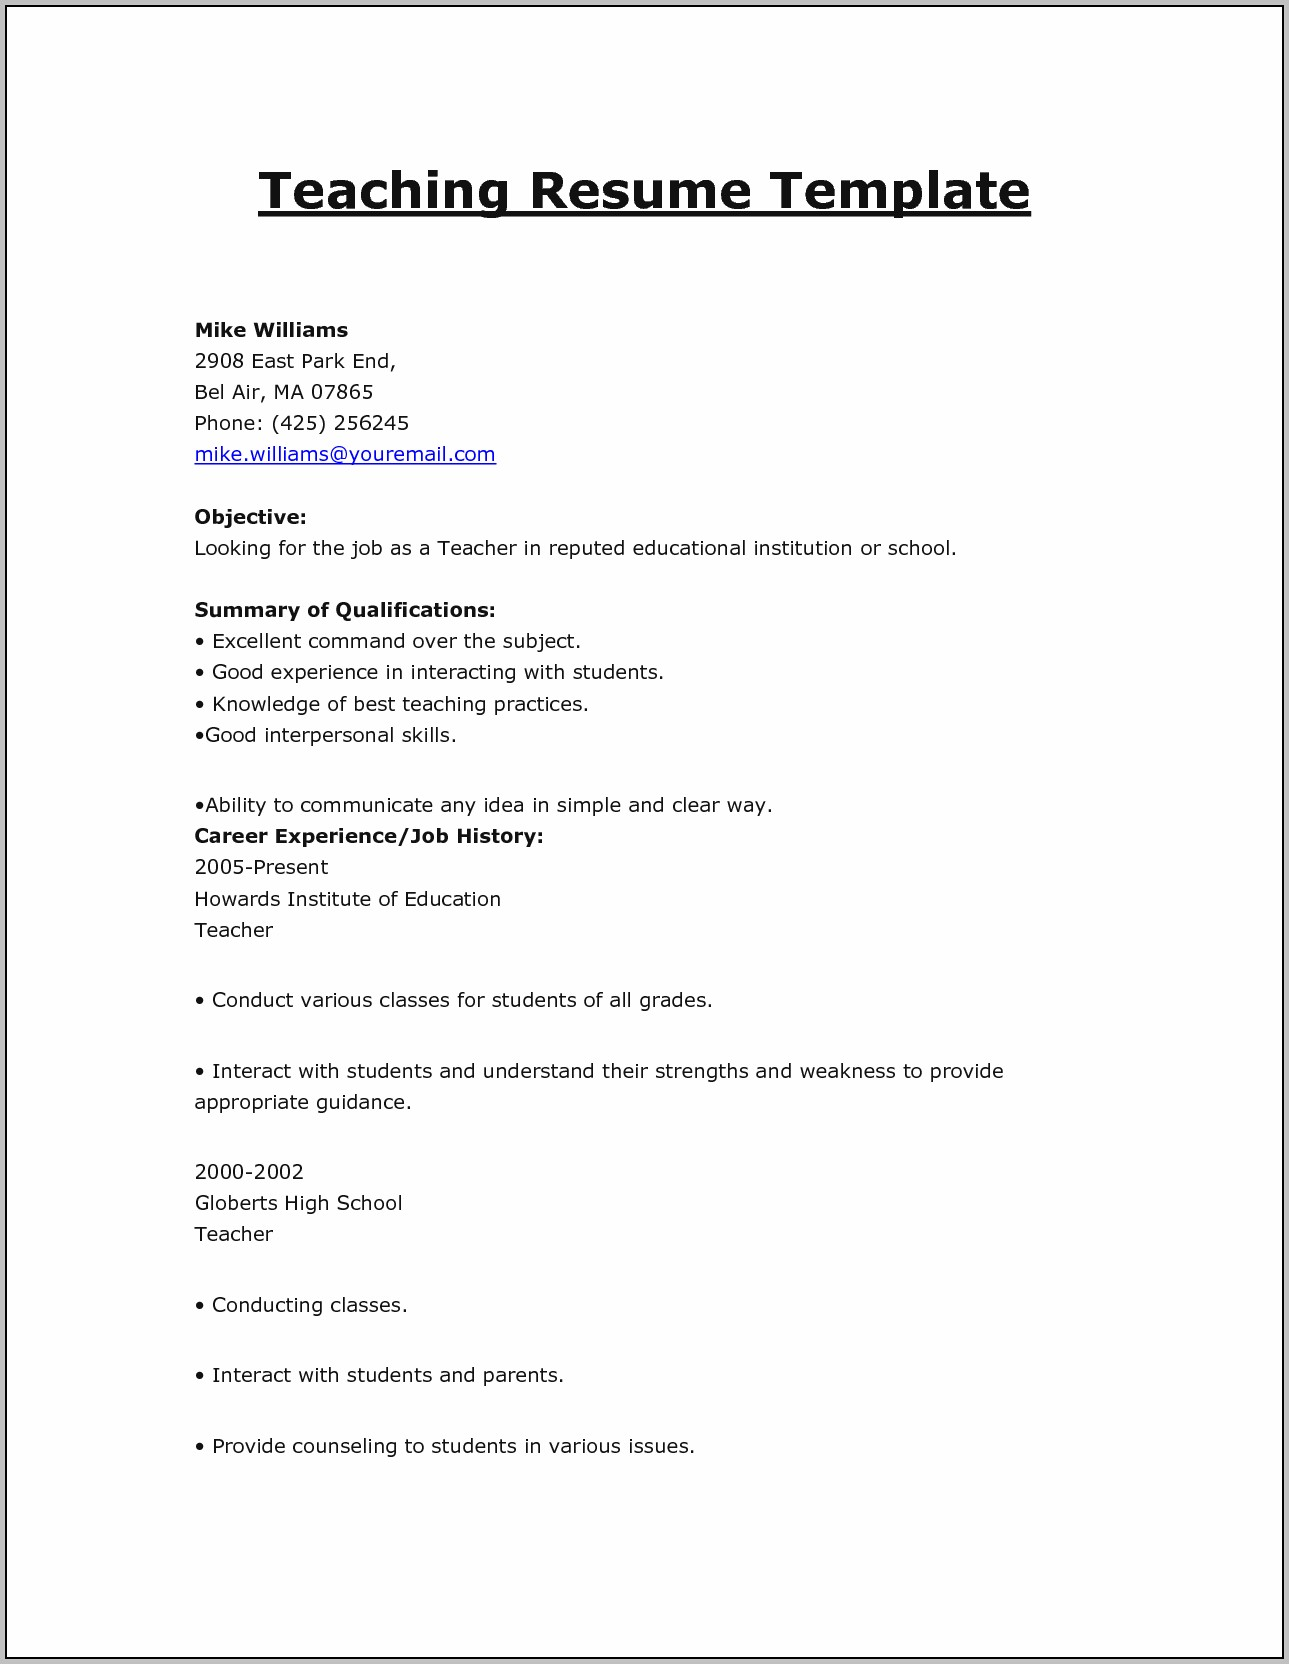 Resume For Teaching Jobs Templates